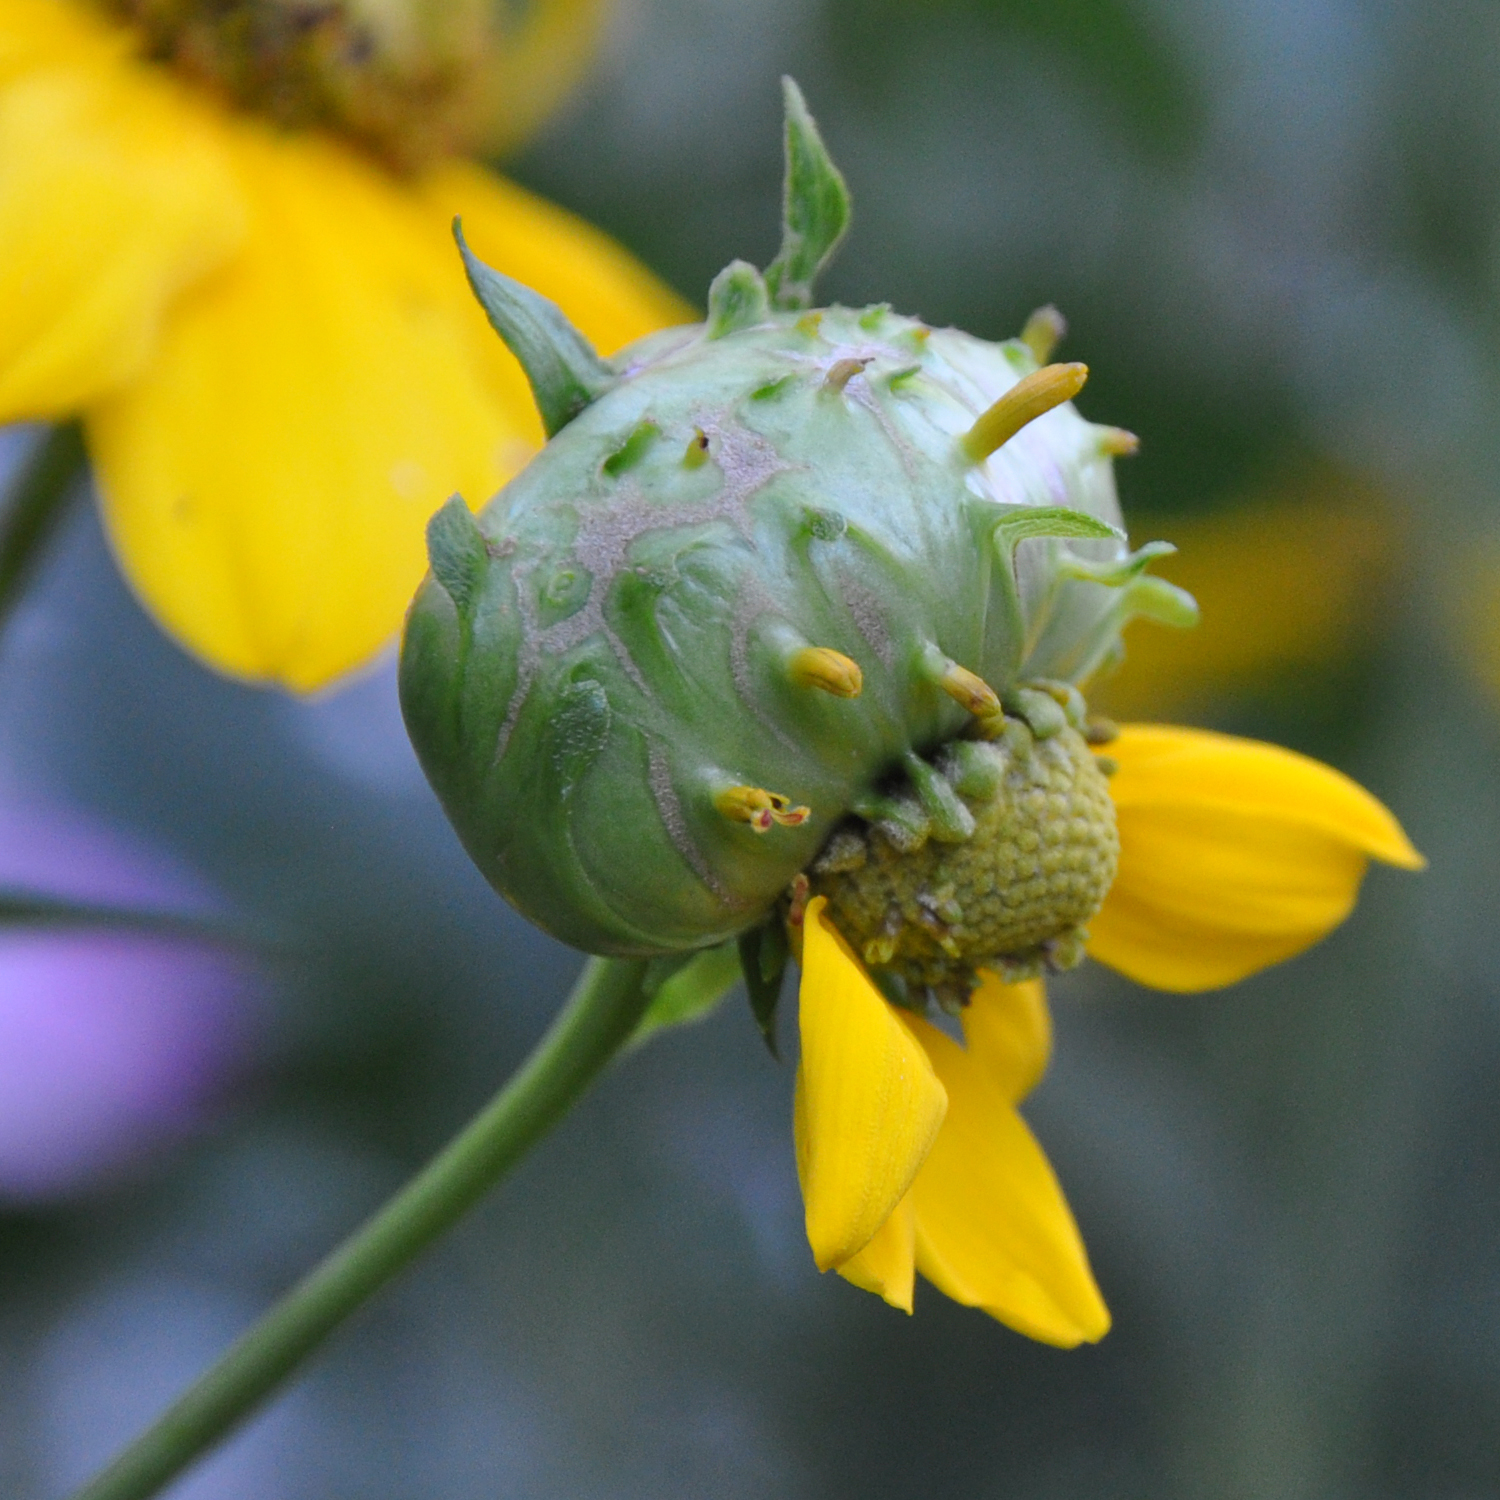 Galls on a Flower